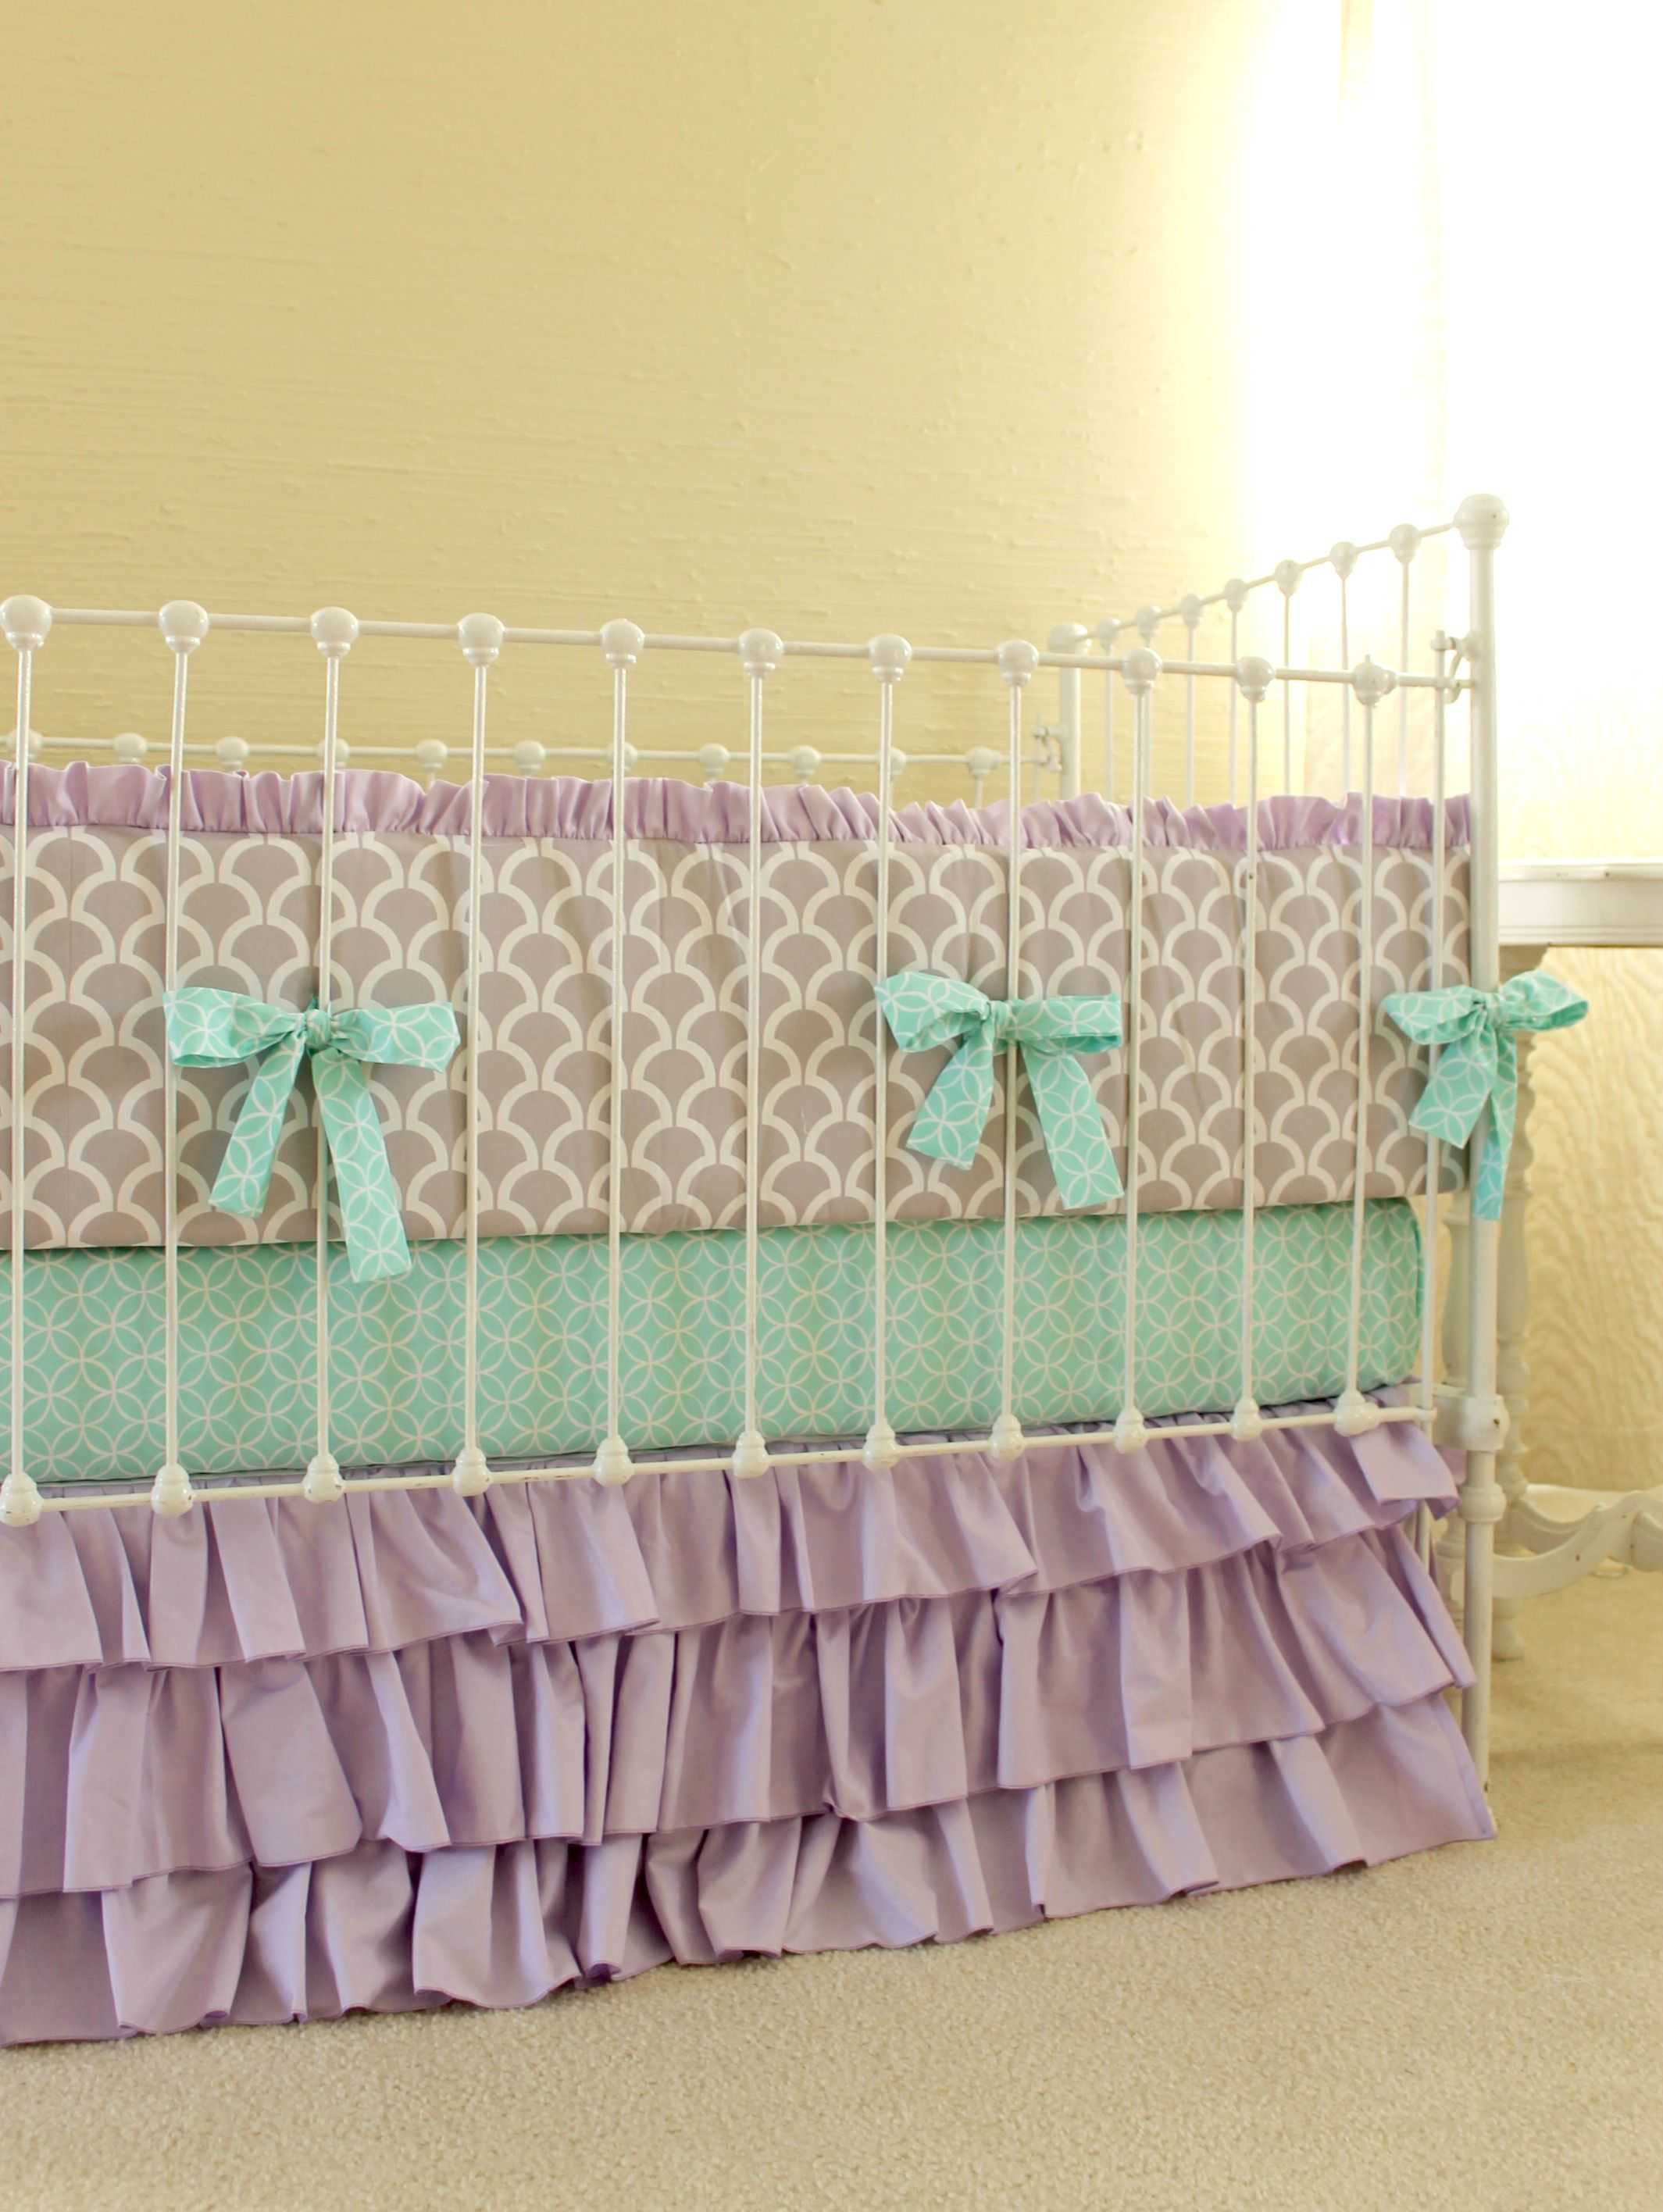 Mermaid Crib Bedding Google Search Grandbaby